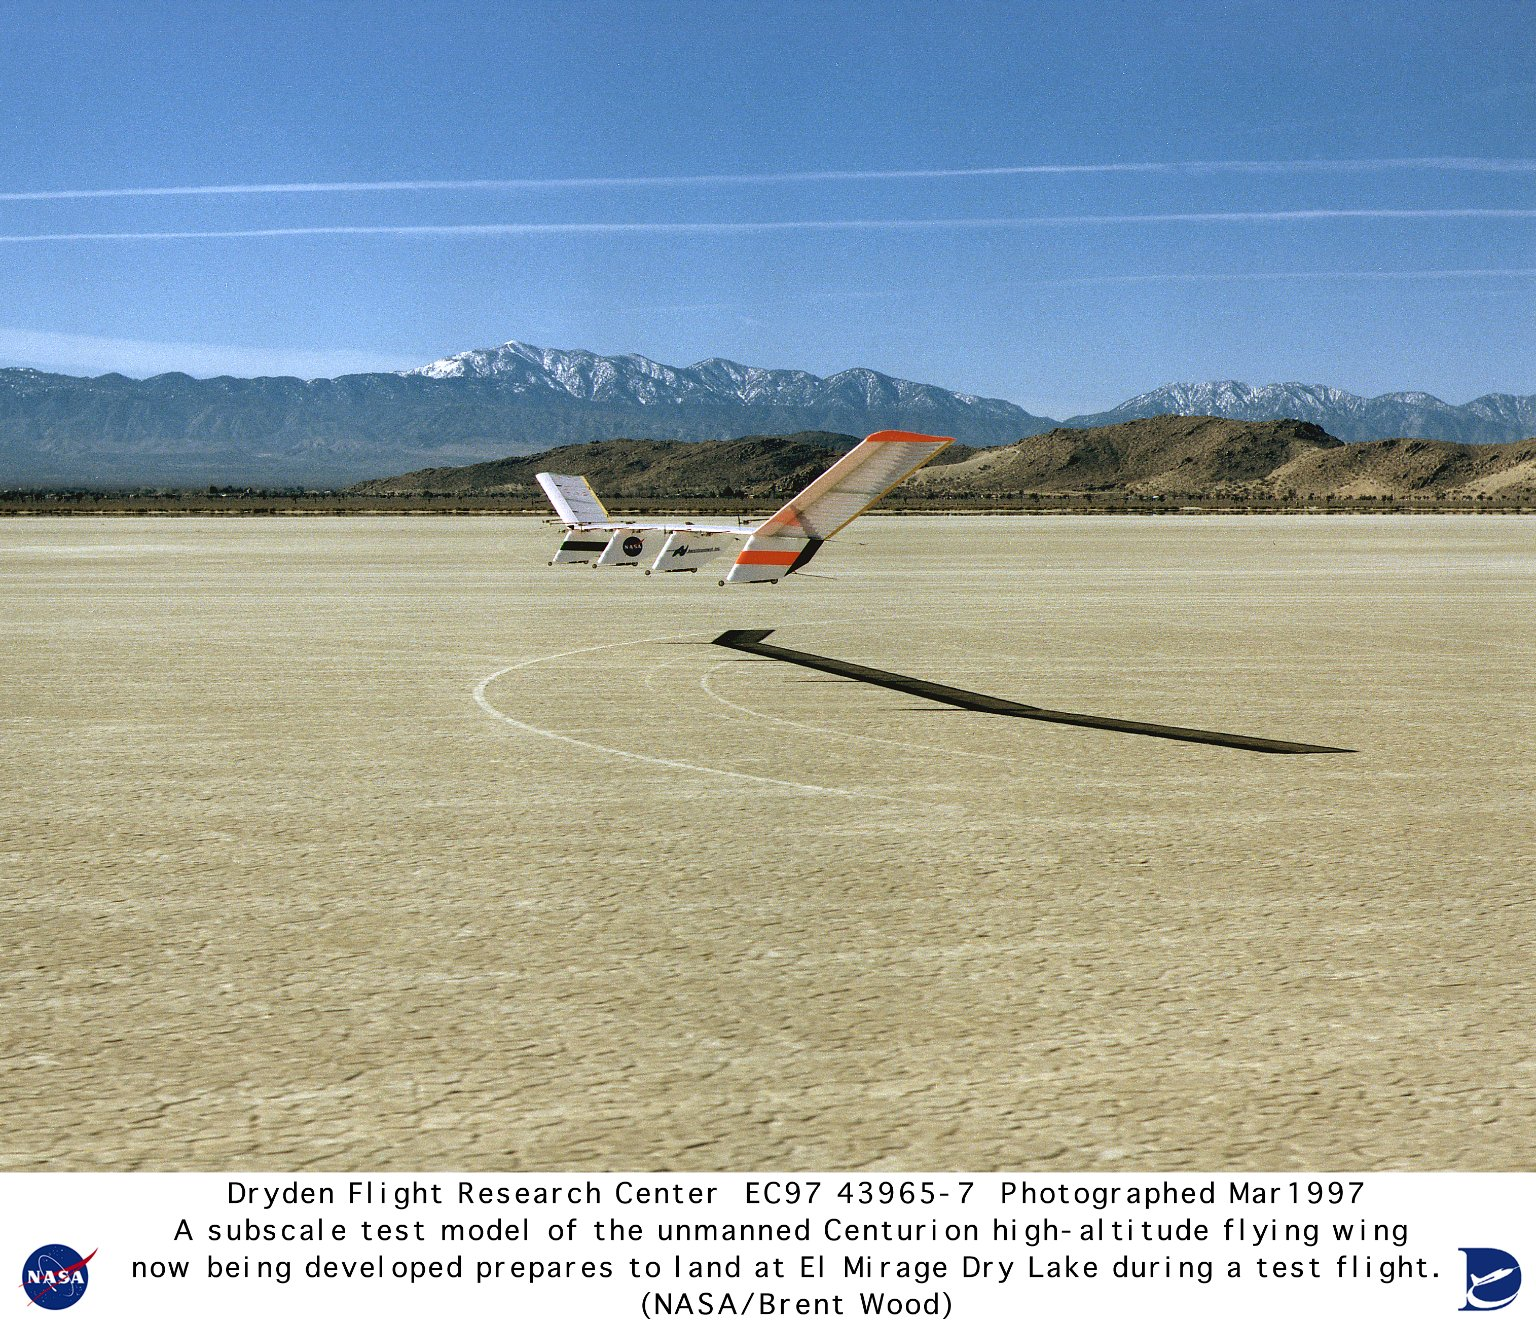 Quarter-scale Model of Solar-powered Centurion Ultra-high-altitude Flying Wing Landing during First